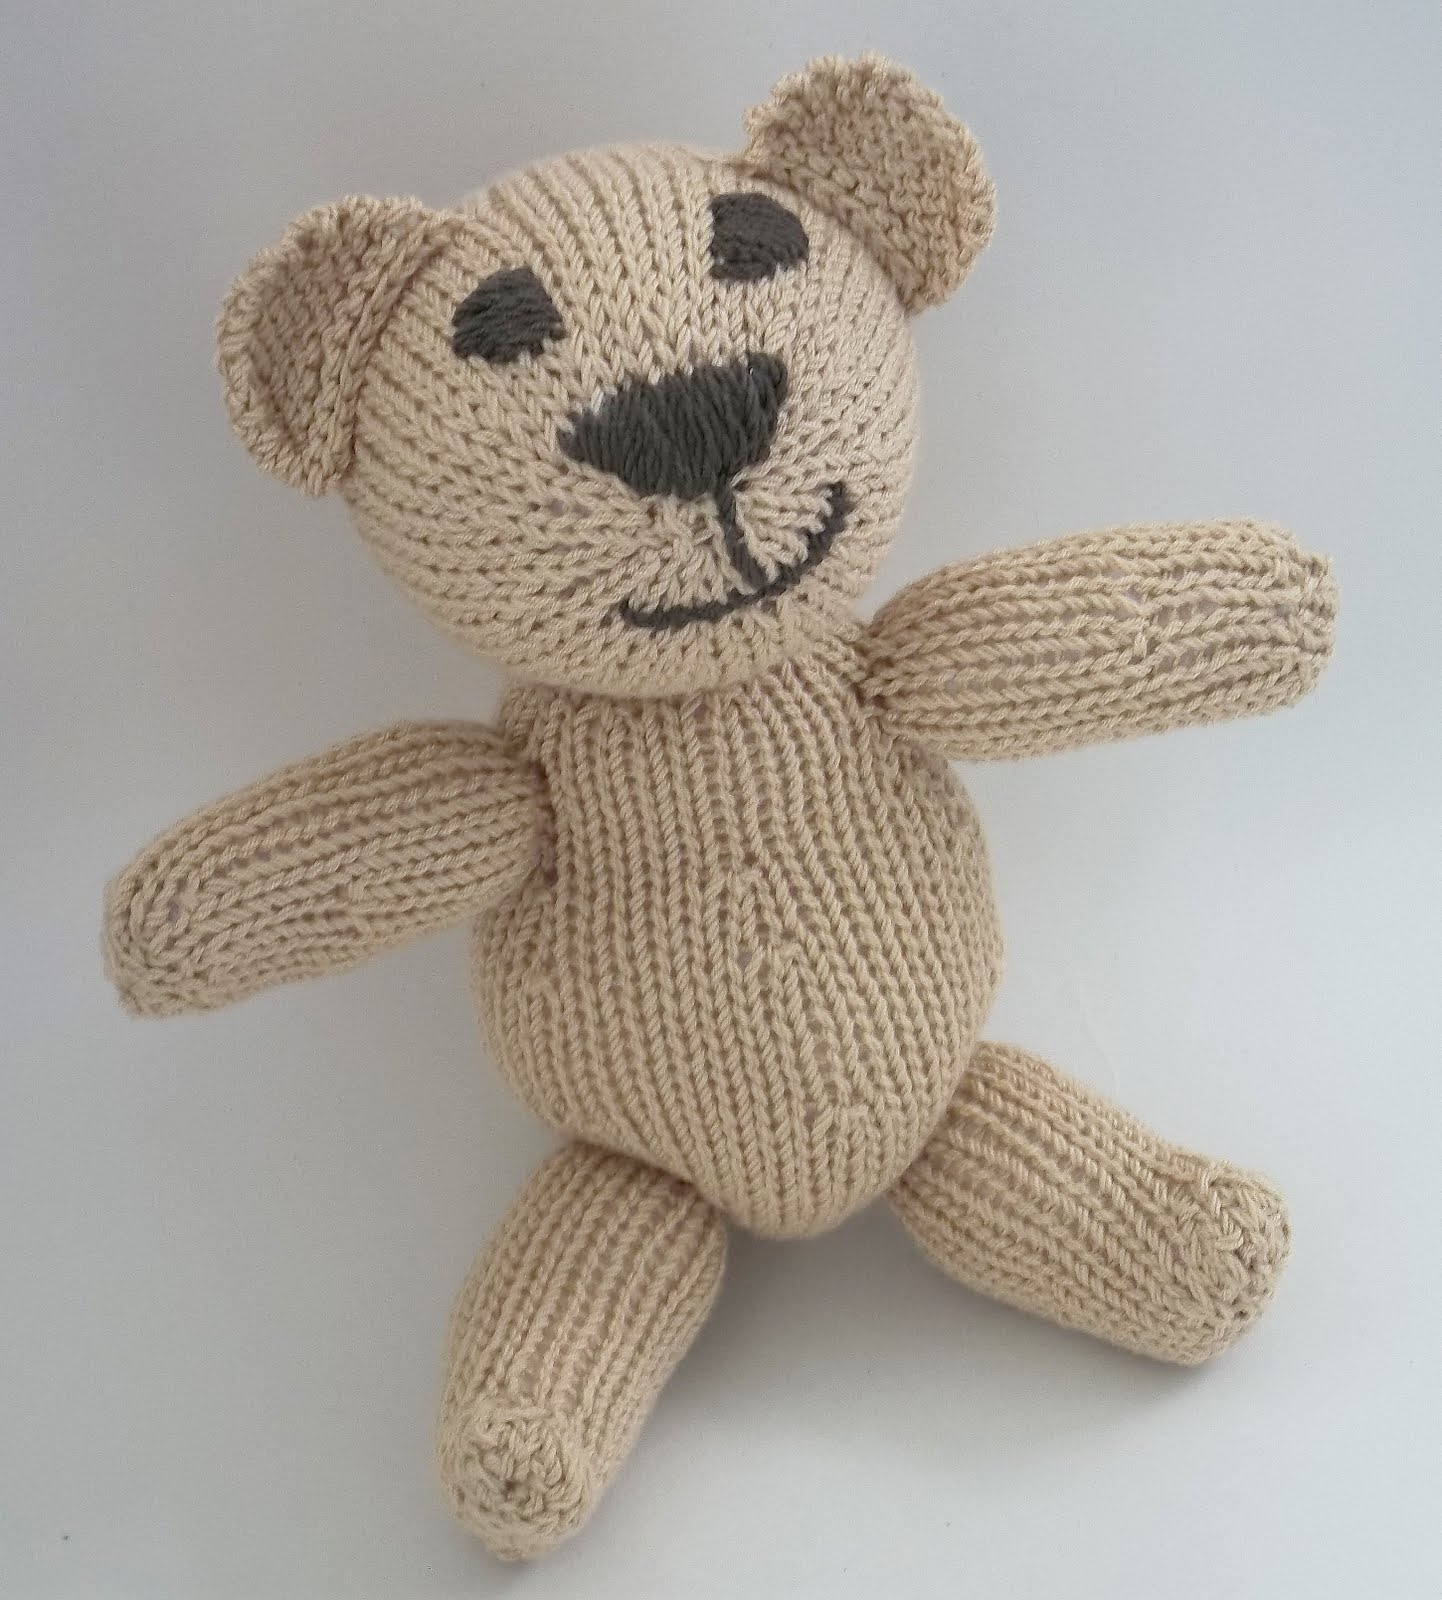 Knitted Teddy Bear Pattern Free : Teddy Bear. Hand Knitting Pattern